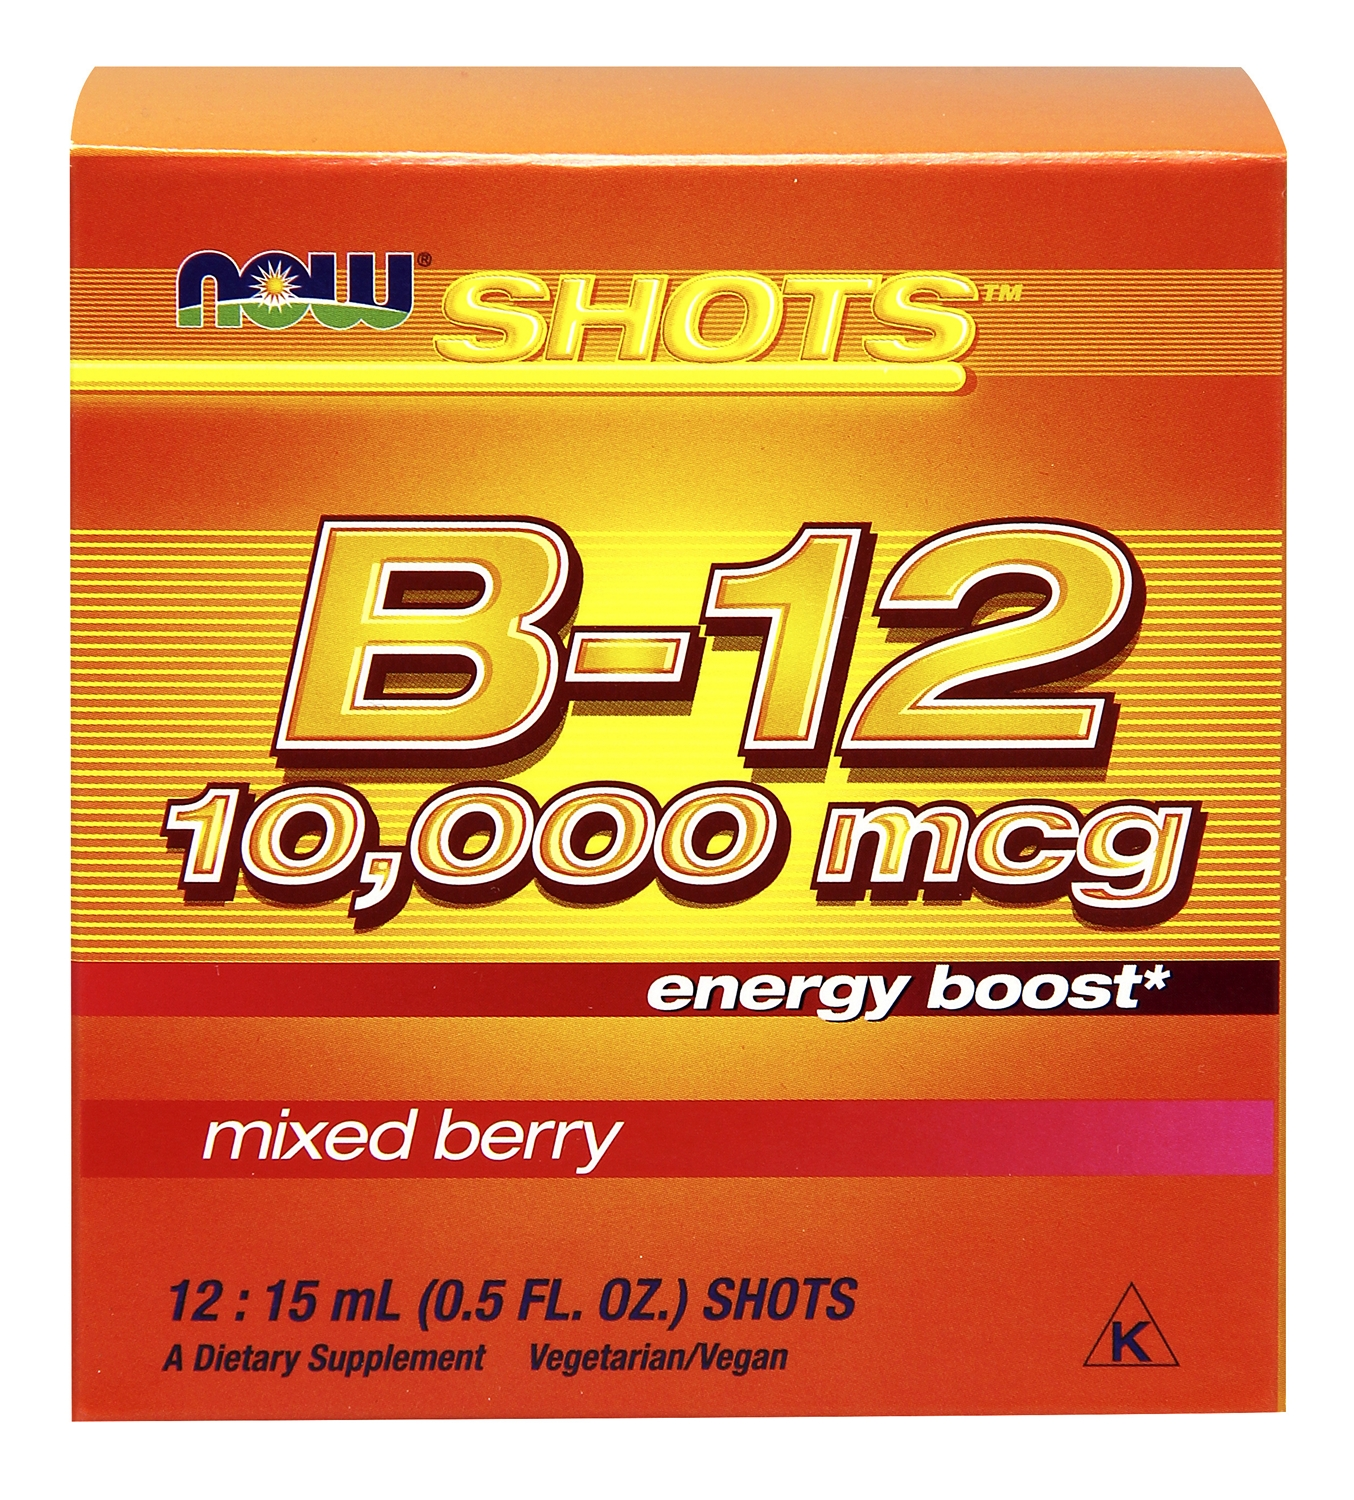 B-12 10,000 mcg Mixed Berry 0.5 fl oz (15 ml) Shot 12 Shots by NOW